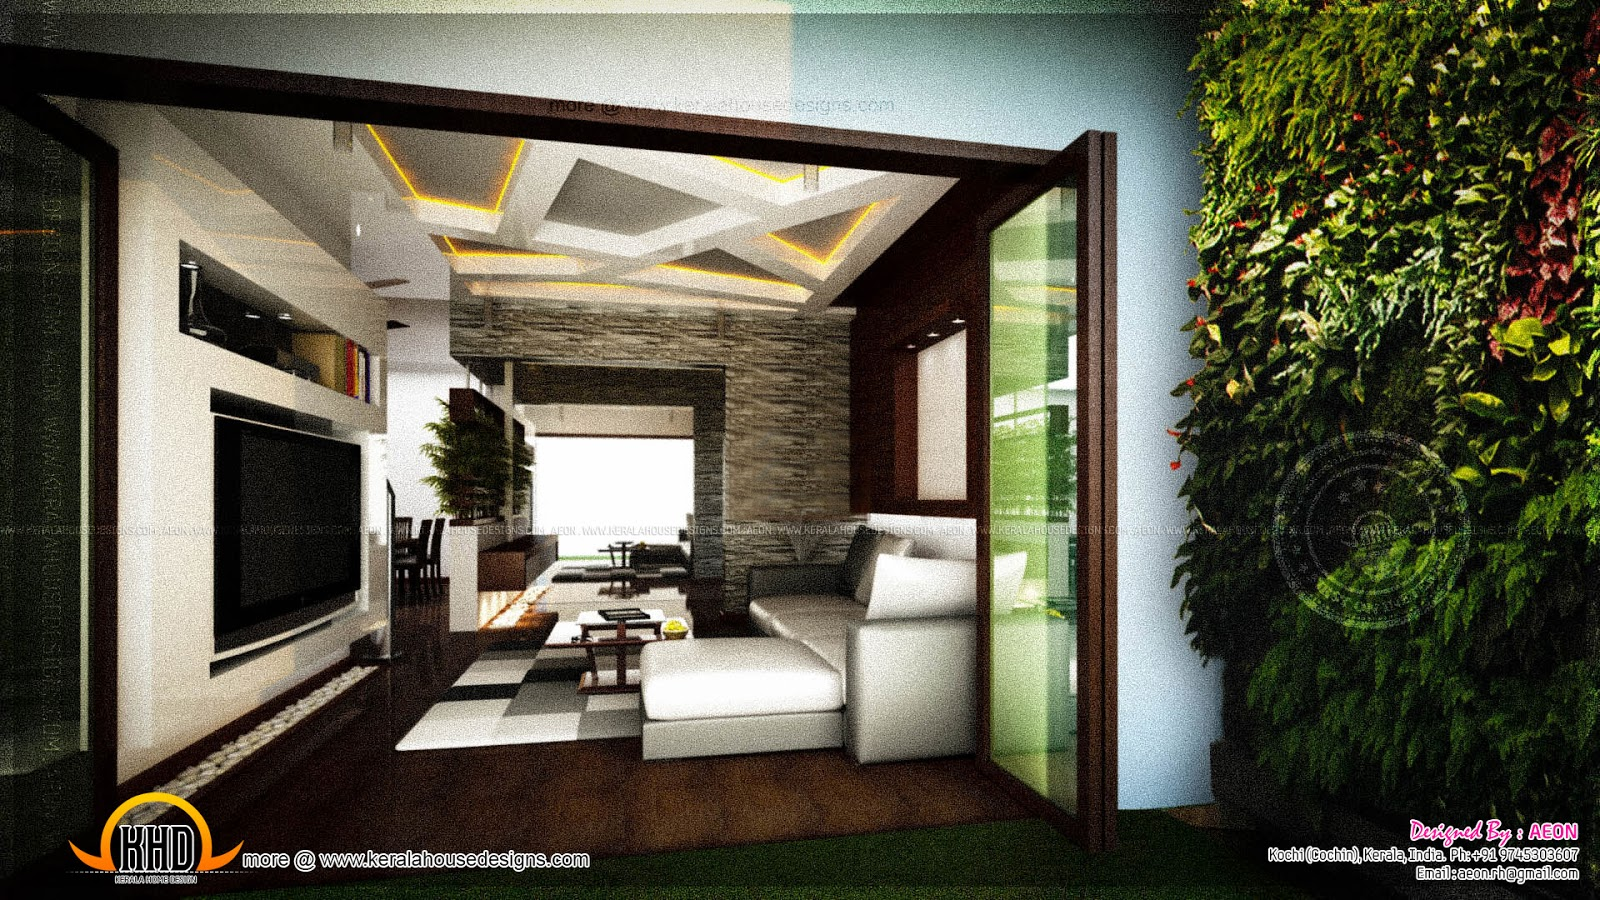 Apartment interior designs by aeon cochin kerala home for Small apartment interior design india